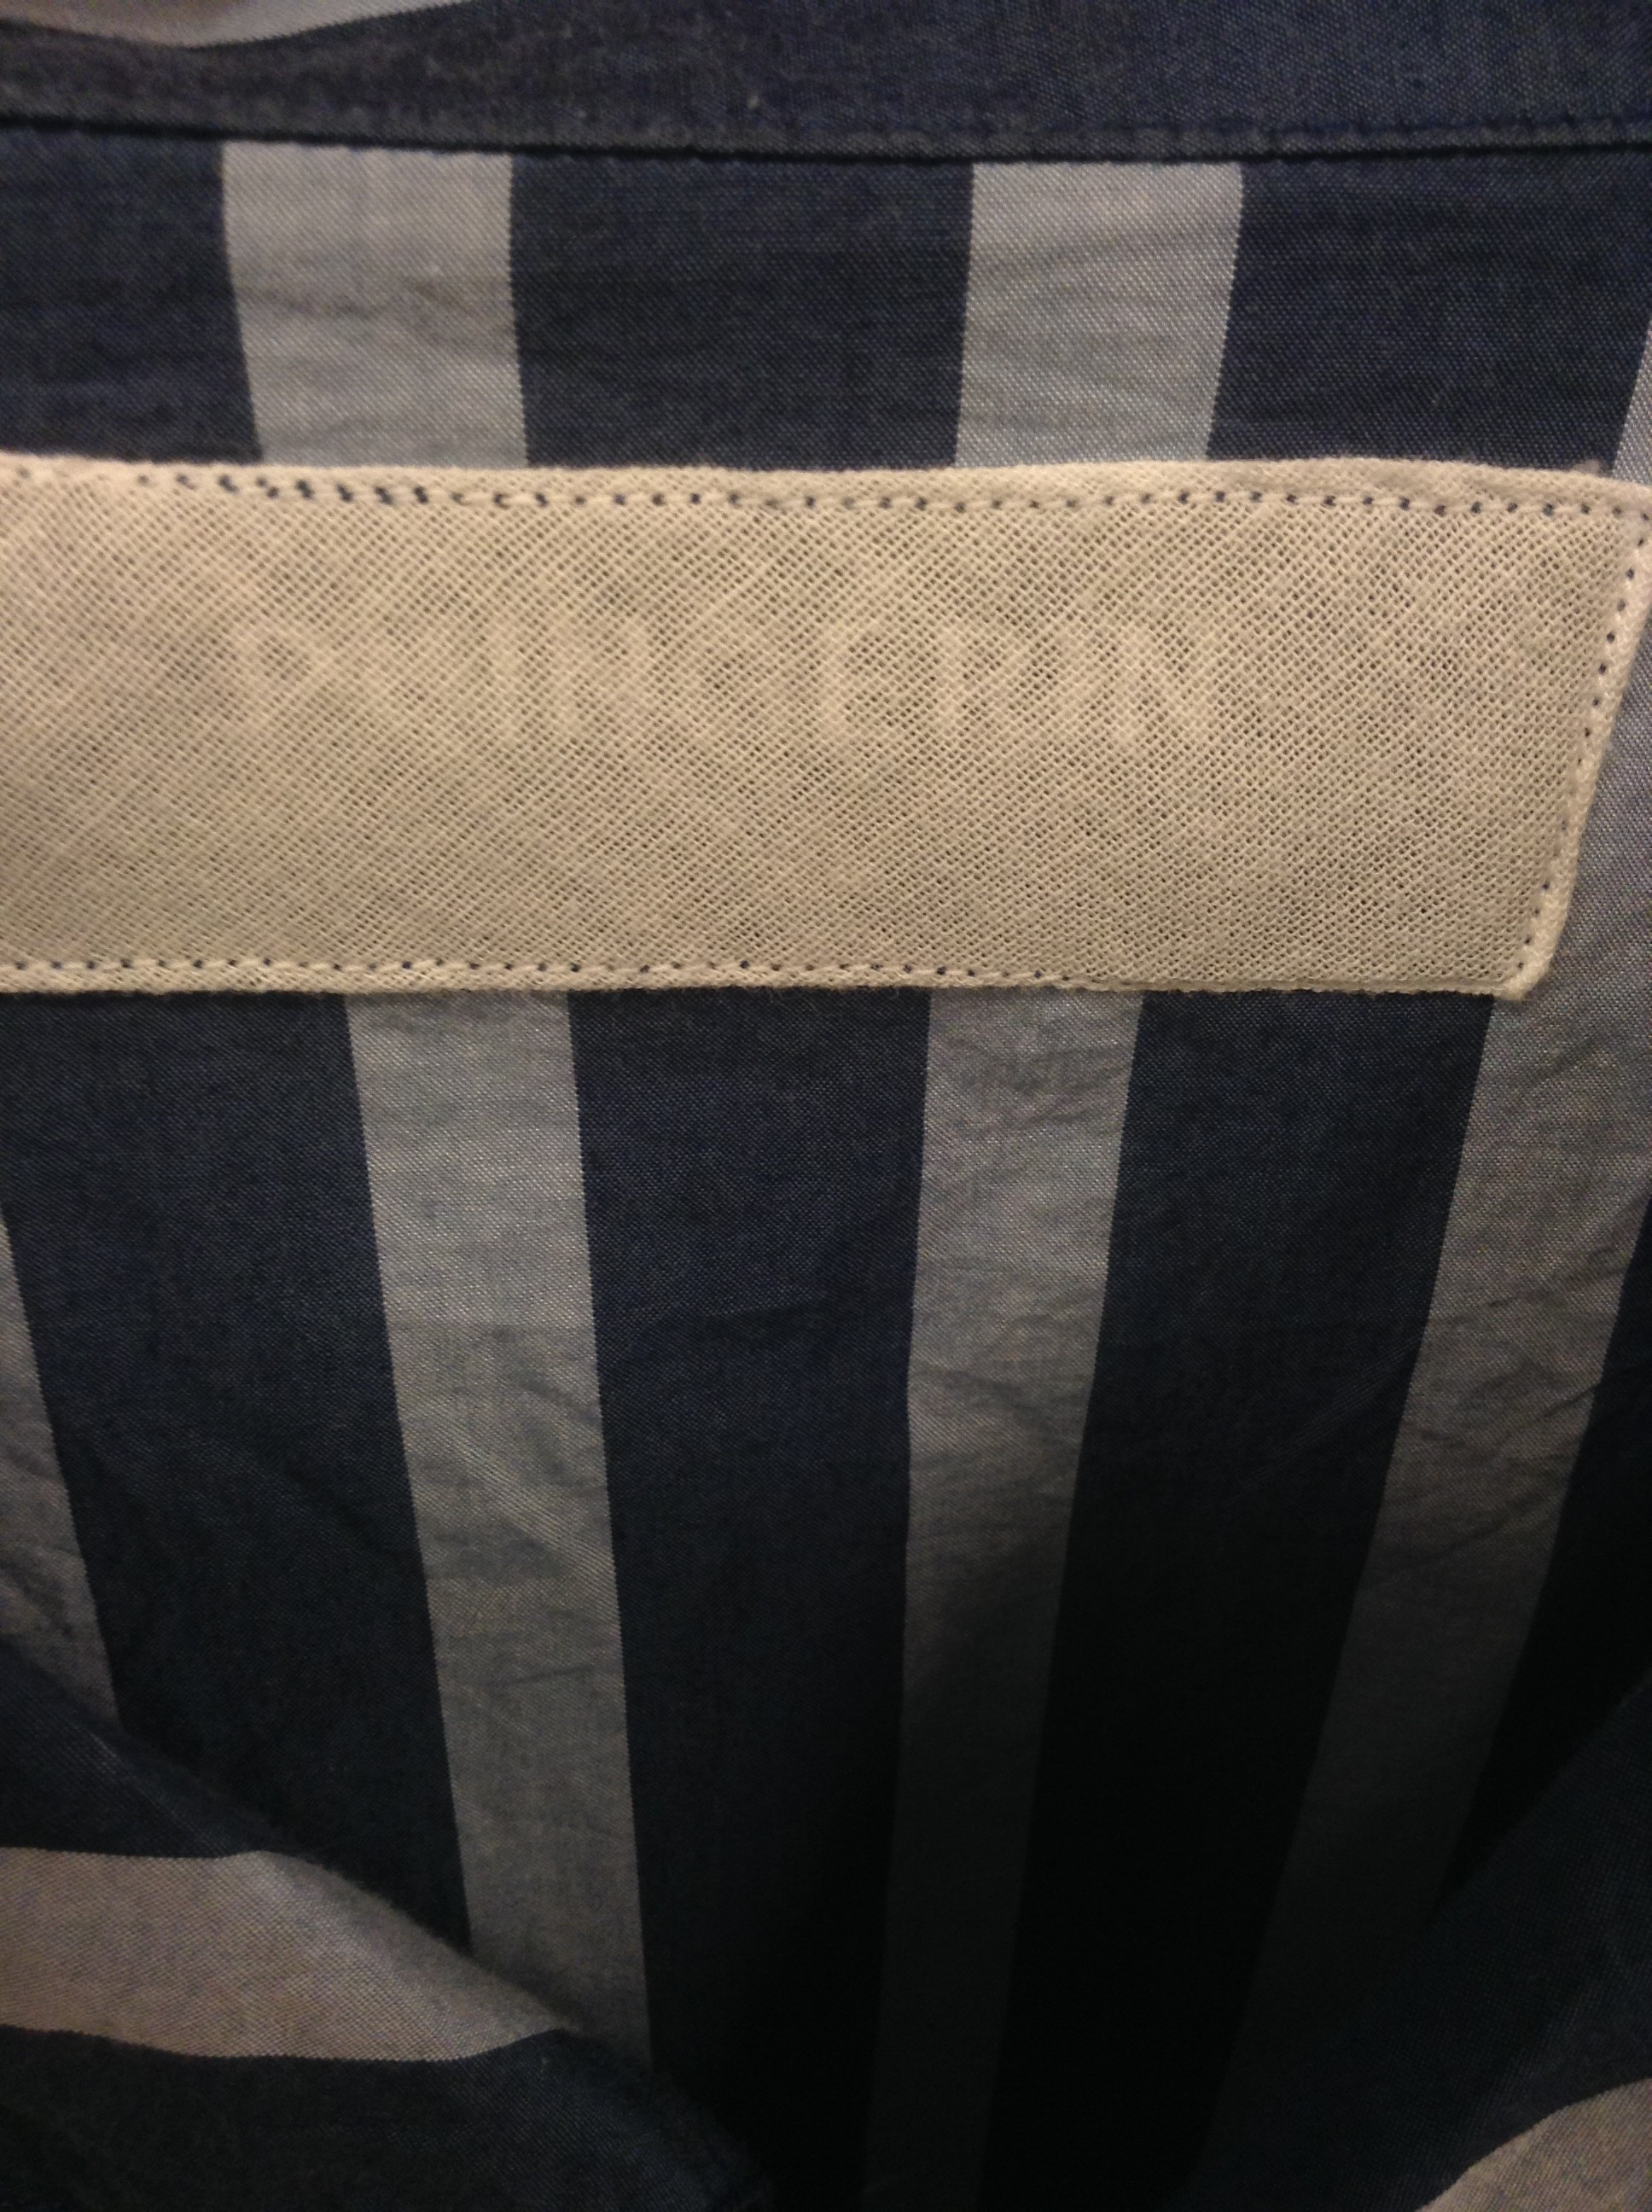 how to find nimiq 91 and 82